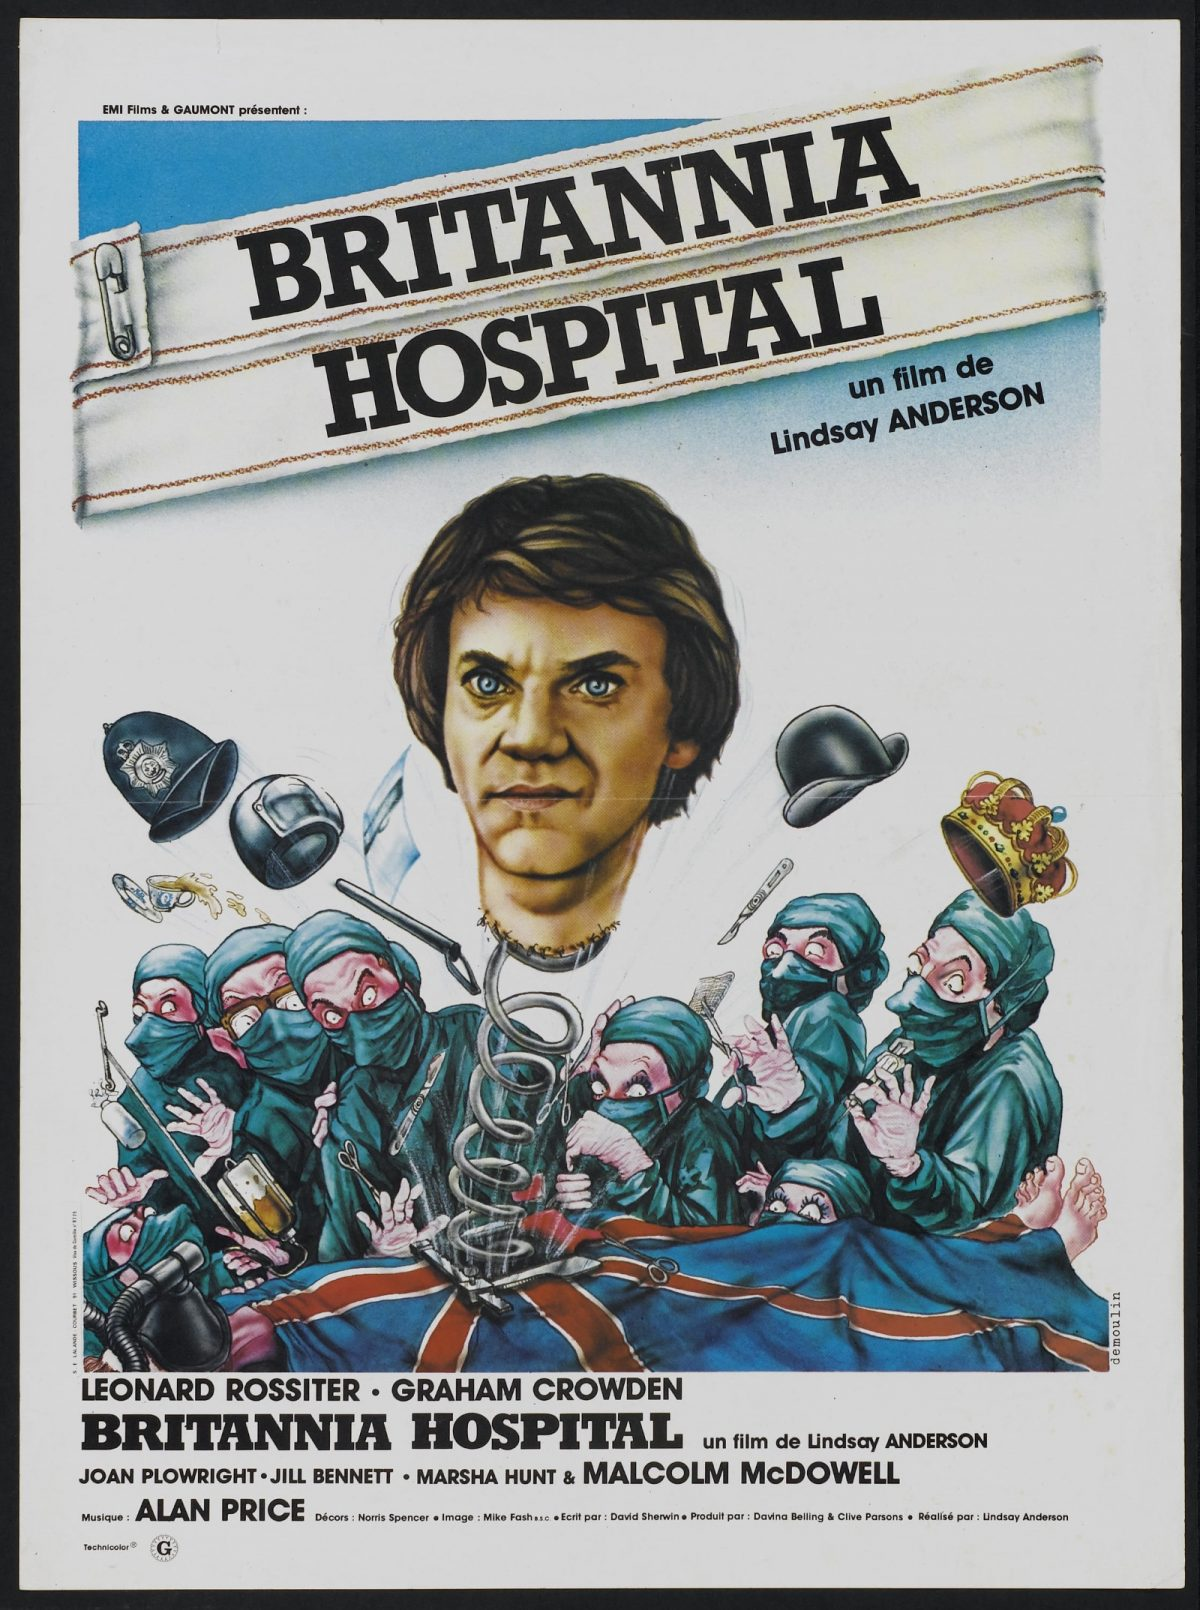 Britannia Hospital, Lindsay Anderson, film, poster, Malcolm McDowell